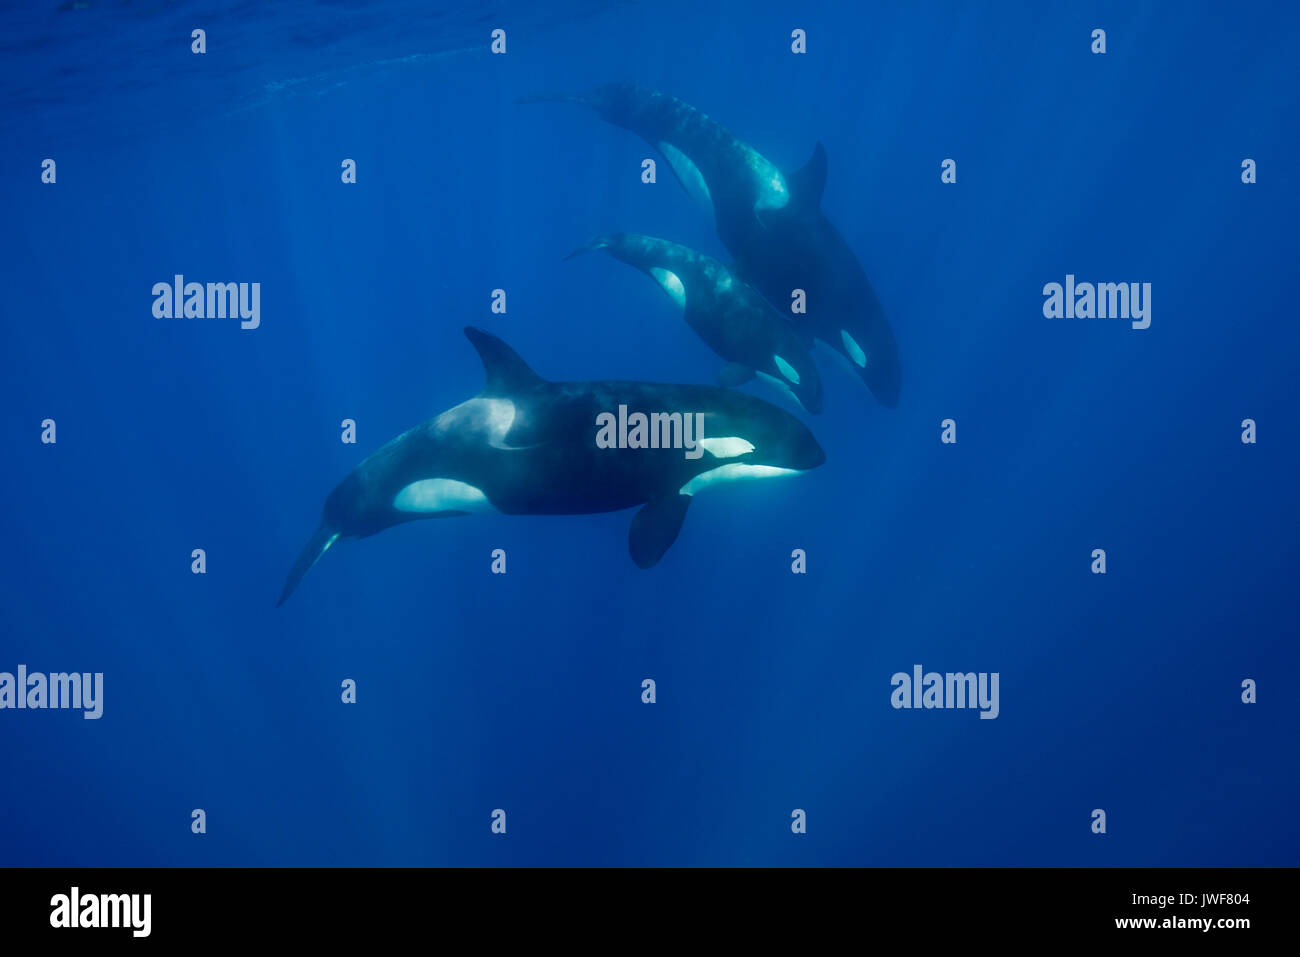 Pod of orcas swimming near the surface in blue water, North Island, New Zealand. There a small calf swimming with the pod. - Stock Image